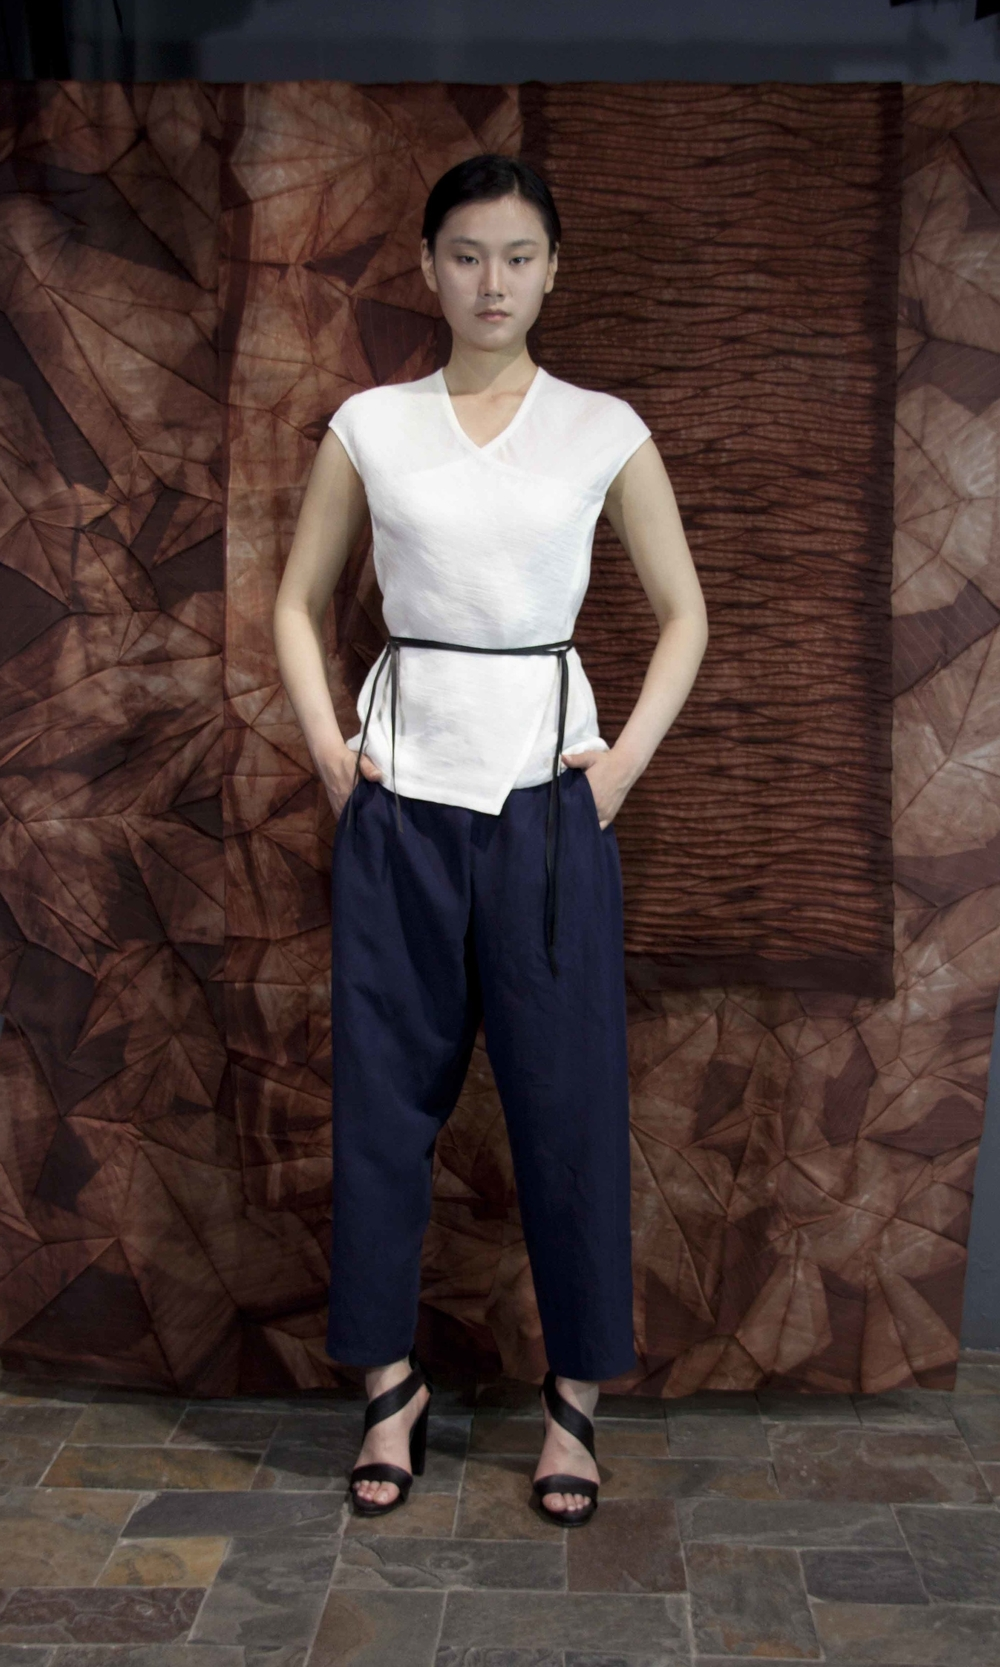 "28-25  White silk-linen wrap-around top/ Blue   loose silk-linen wrap pants  /   白色丝麻裹式上衣  /  蓝色宽松丝麻裹式裤子                                                                                                                                                                                                                                                                                                   /* Style Definitions */  table.MsoNormalTable 	{mso-style-name:""Table Normal""; 	mso-tstyle-rowband-size:0; 	mso-tstyle-colband-size:0; 	mso-style-noshow:yes; 	mso-style-priority:99; 	mso-style-qformat:yes; 	mso-style-parent:""""; 	mso-padding-alt:0in 5.4pt 0in 5.4pt; 	mso-para-margin-top:0in; 	mso-para-margin-right:0in; 	mso-para-margin-bottom:10.0pt; 	mso-para-margin-left:0in; 	line-height:115%; 	mso-pagination:widow-orphan; 	font-size:11.0pt; 	font-family:""Calibri"",""sans-serif""; 	mso-ascii-font-family:Calibri; 	mso-ascii-theme-font:minor-latin; 	mso-hansi-font-family:Calibri; 	mso-hansi-theme-font:minor-latin; 	mso-bidi-font-family:""Times New Roman""; 	mso-bidi-theme-font:minor-bidi;}"